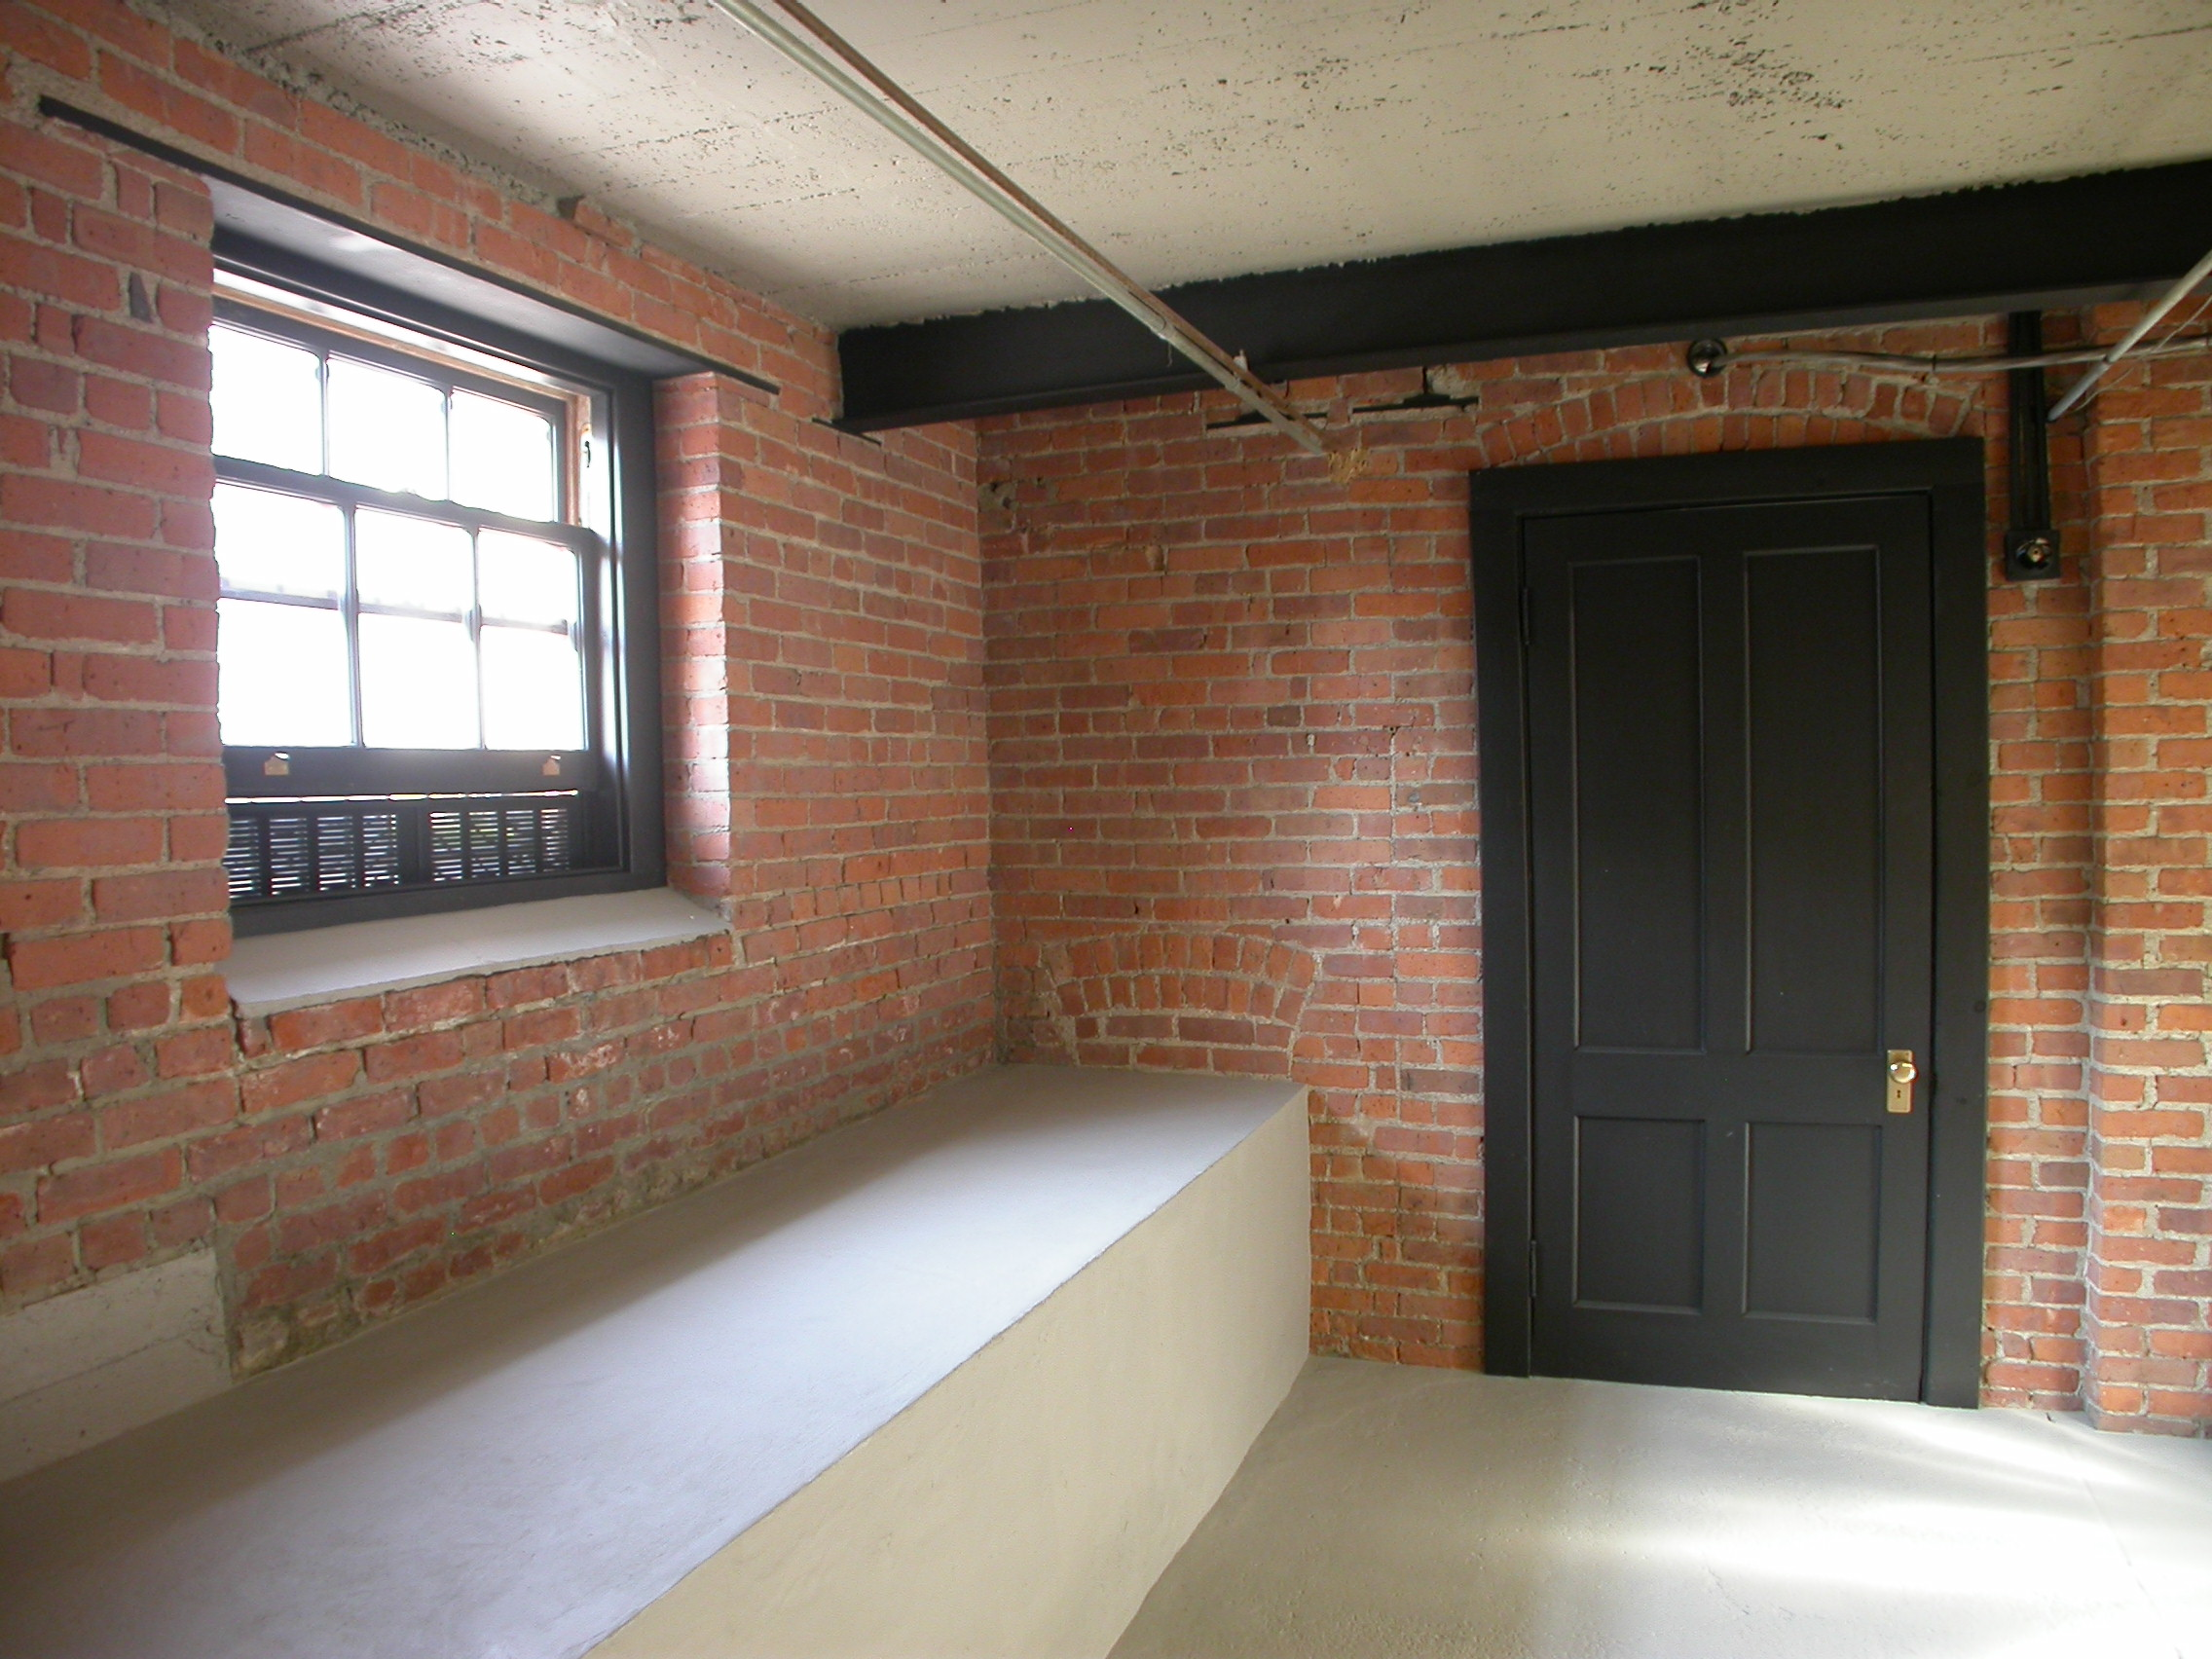 telephone building basement conference room.JPG